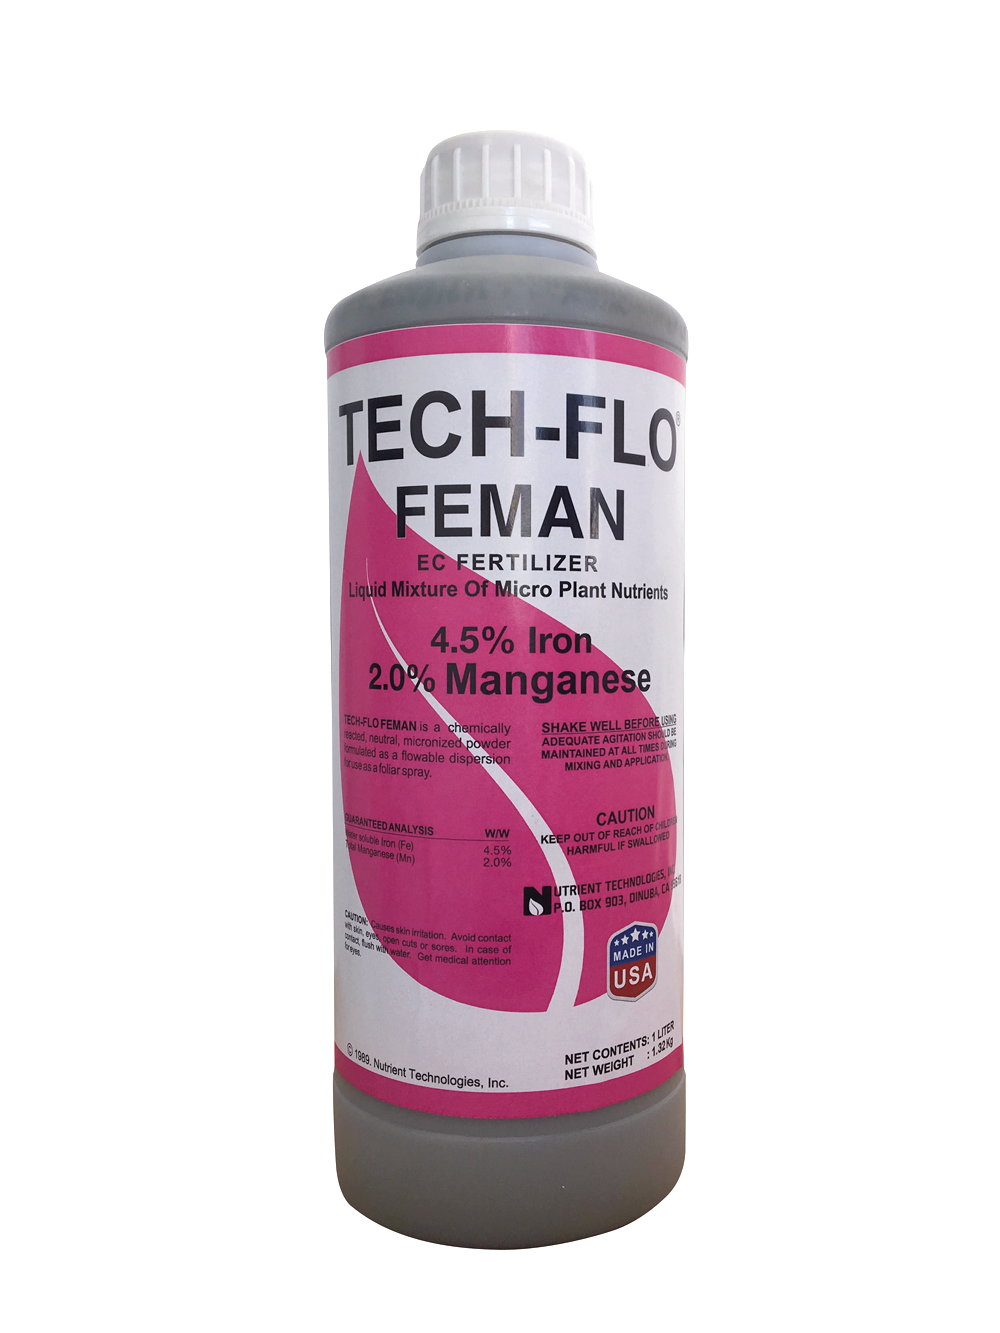 TECH-FLO FEMAN